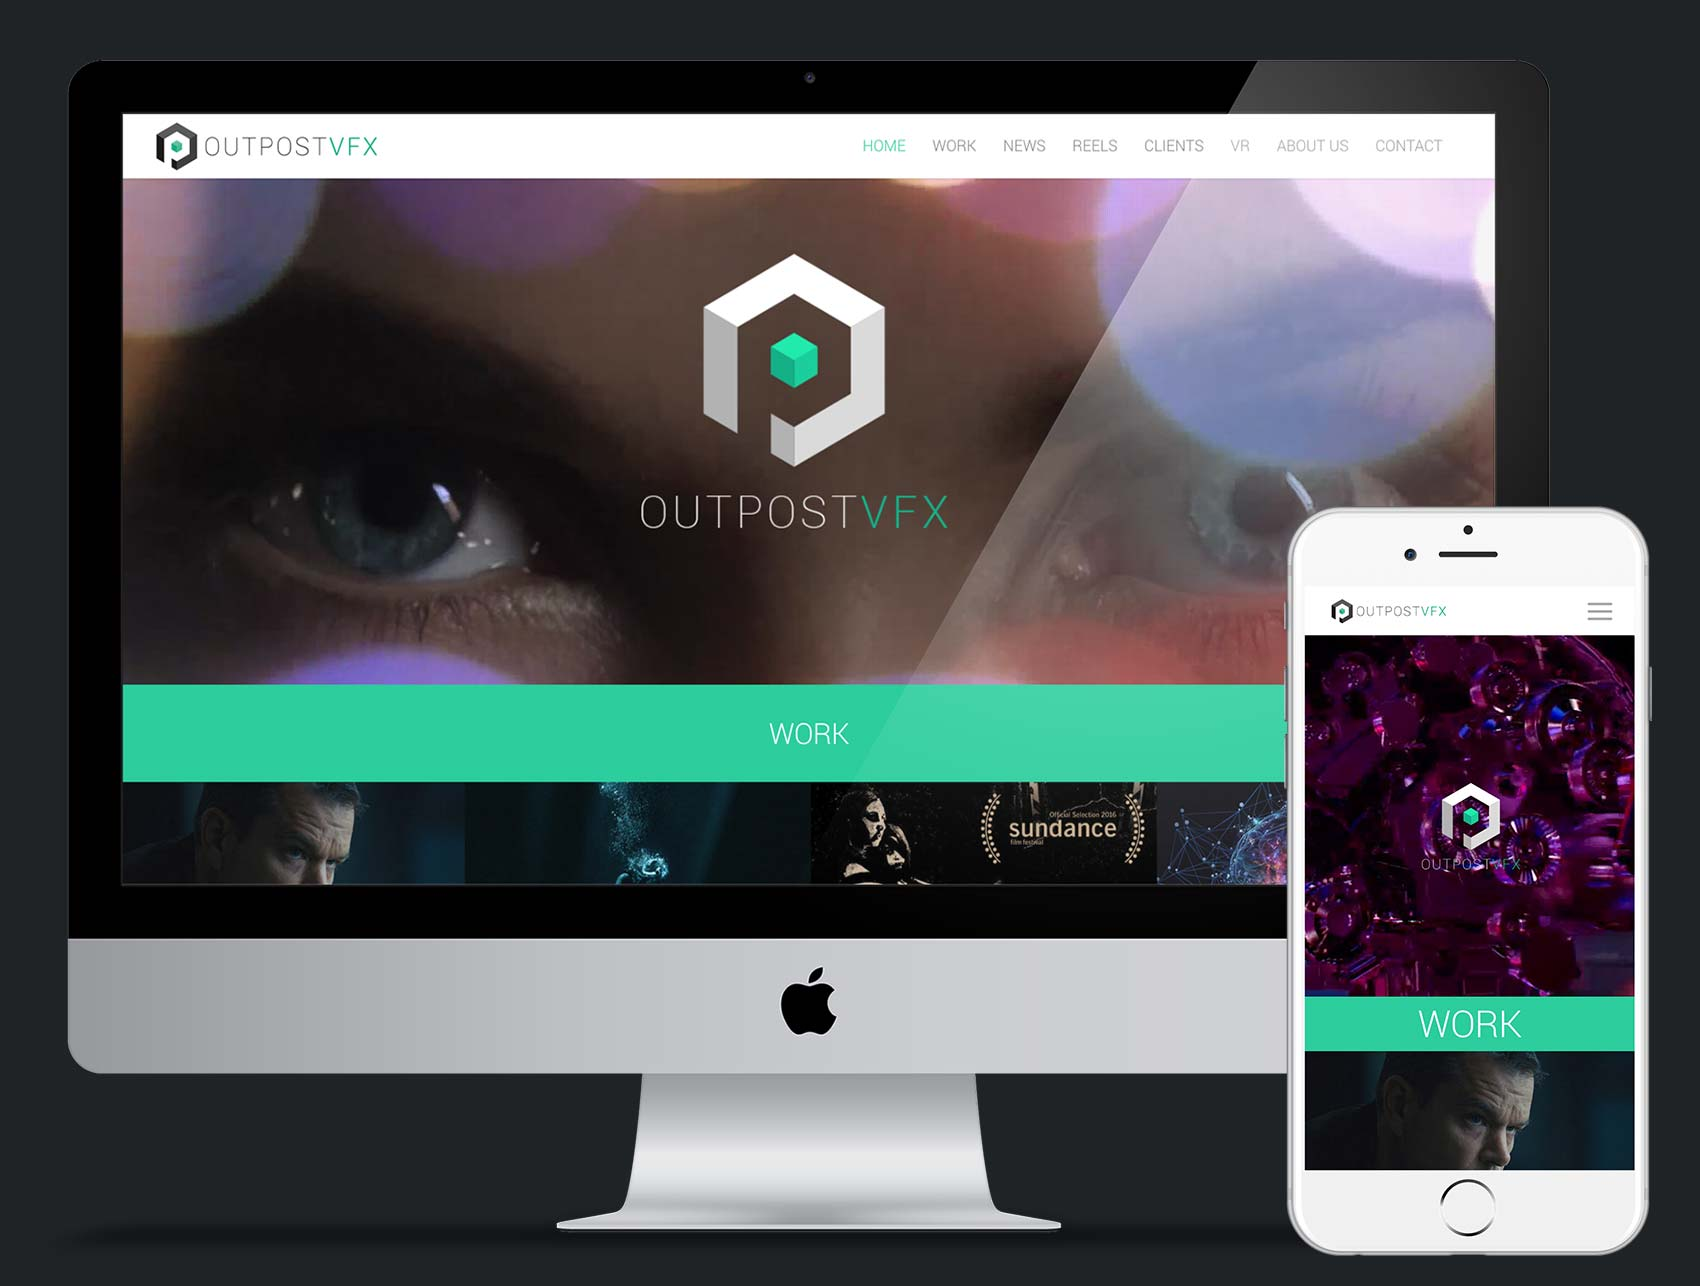 OutpostVFX Web design and build using Wordpress